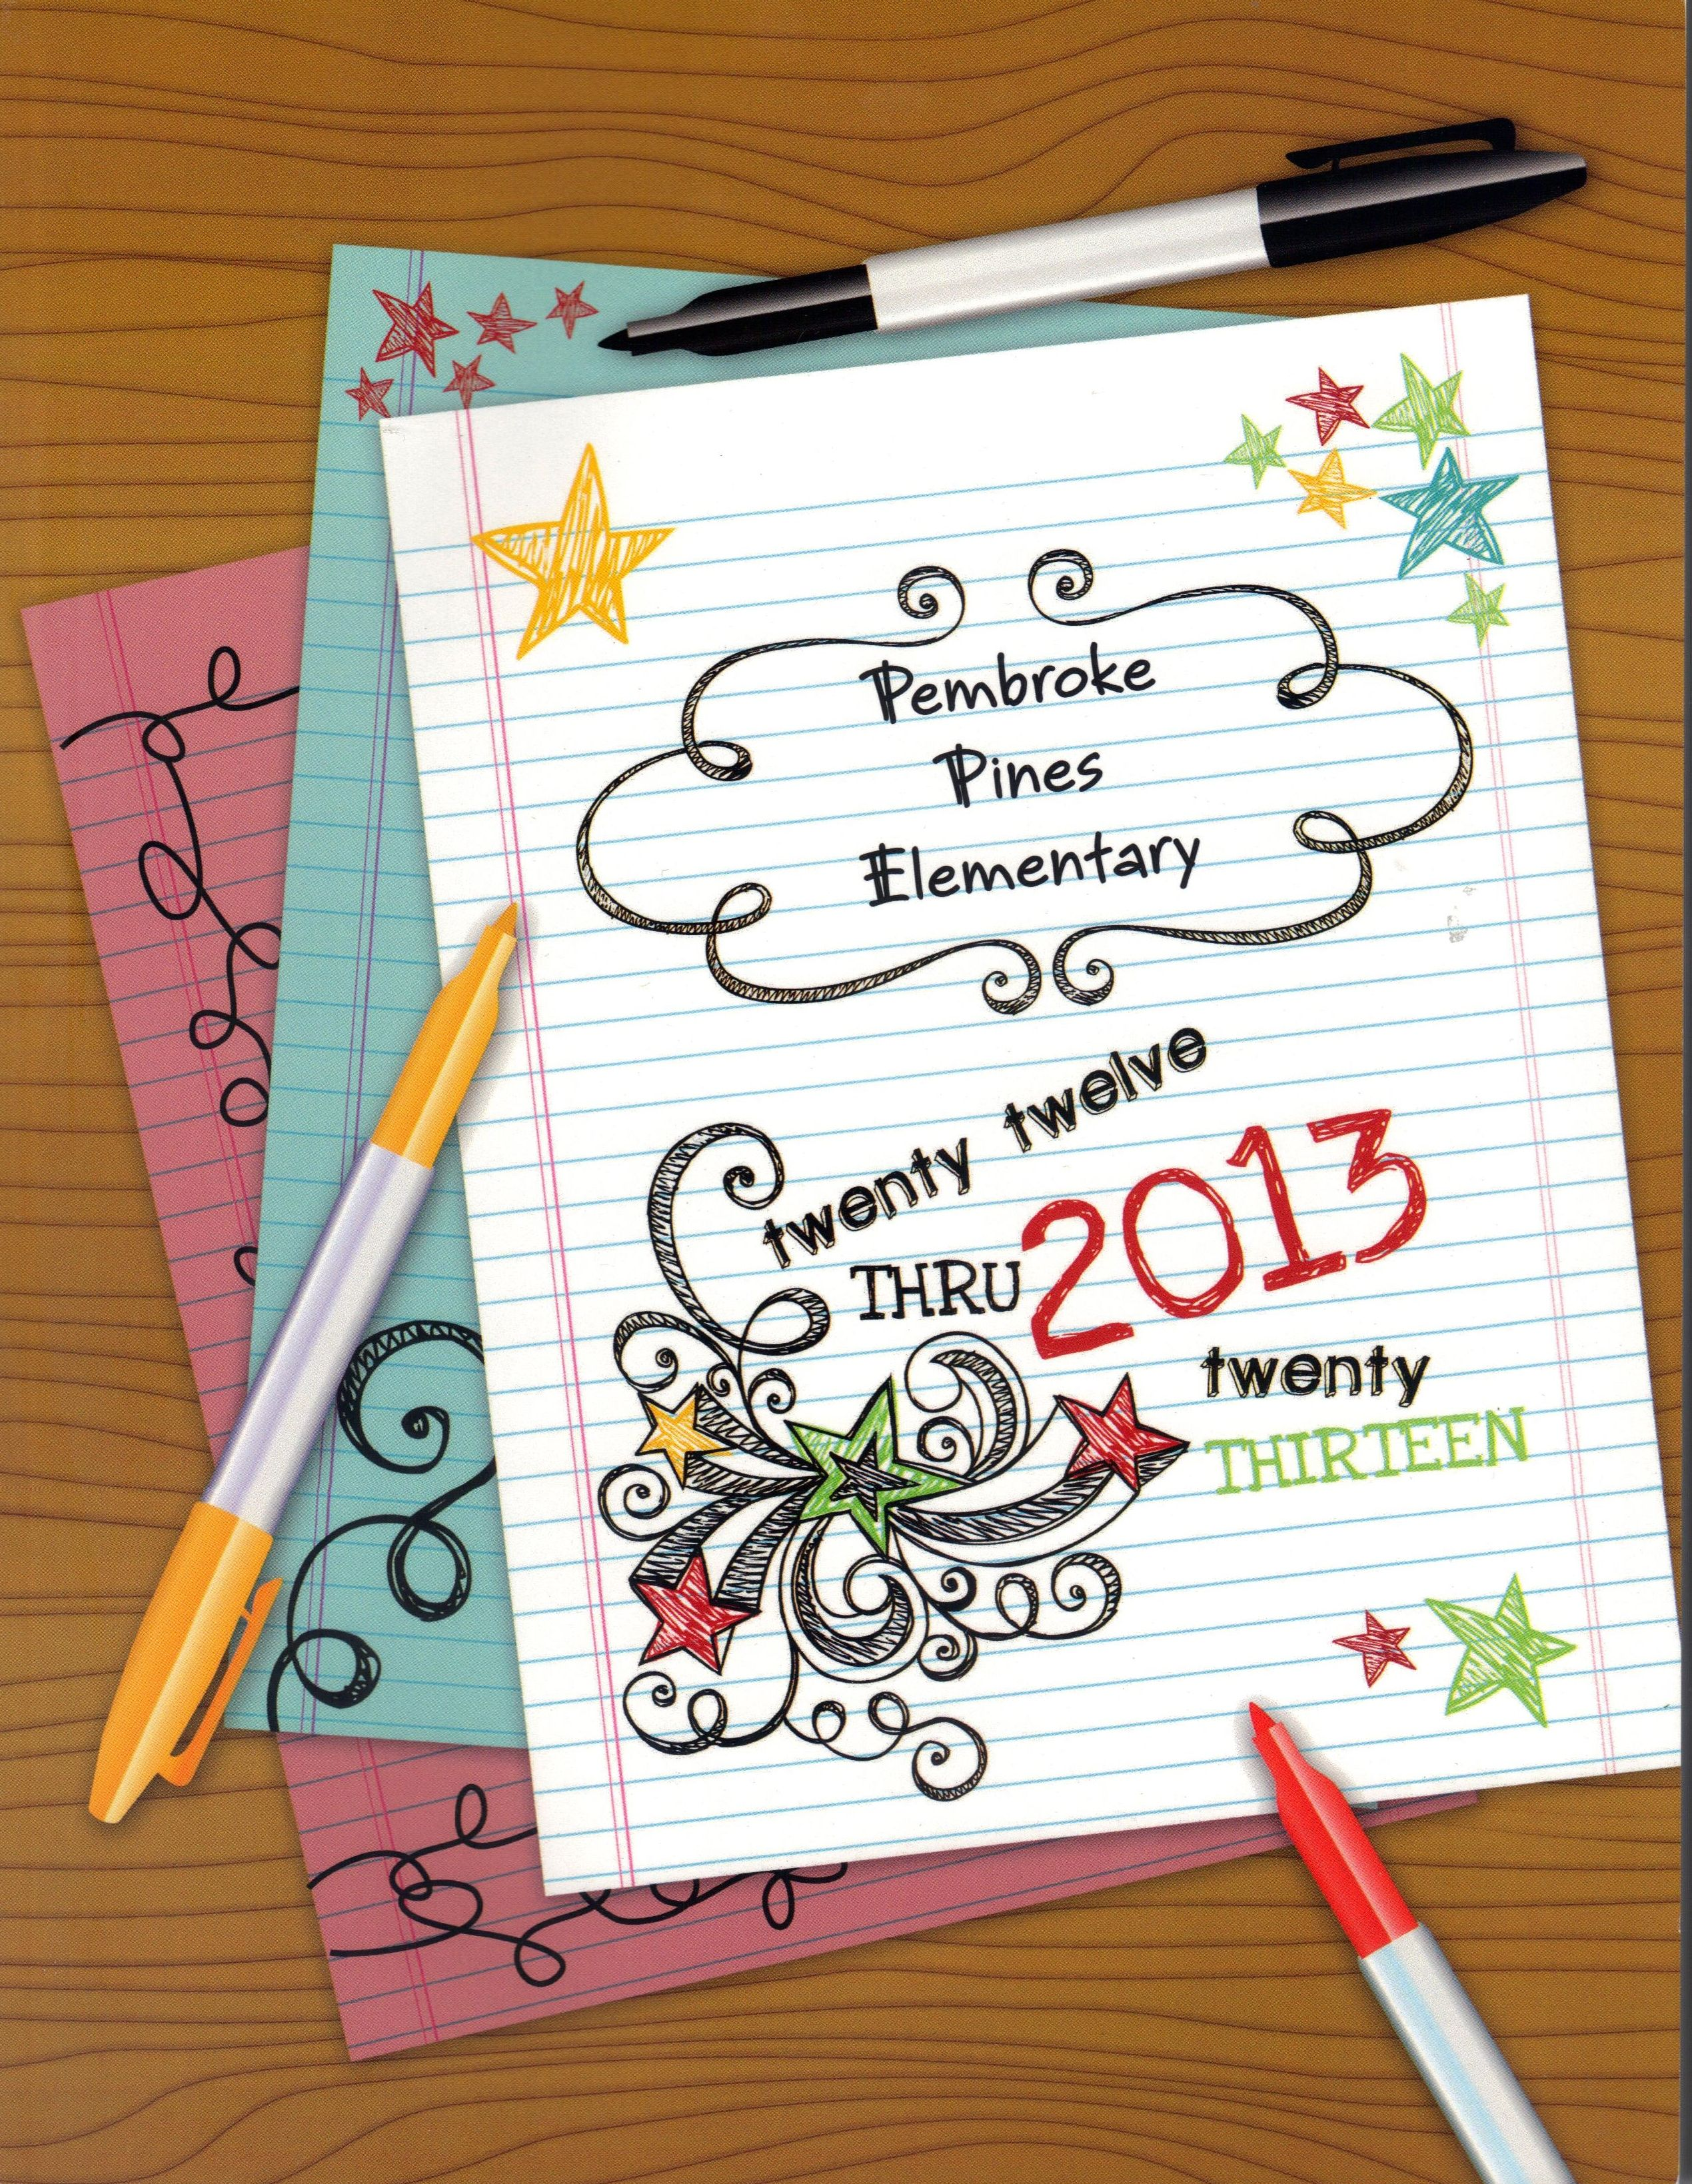 Yearbook Cover Template : Pembroke pines elementary yearbook cover